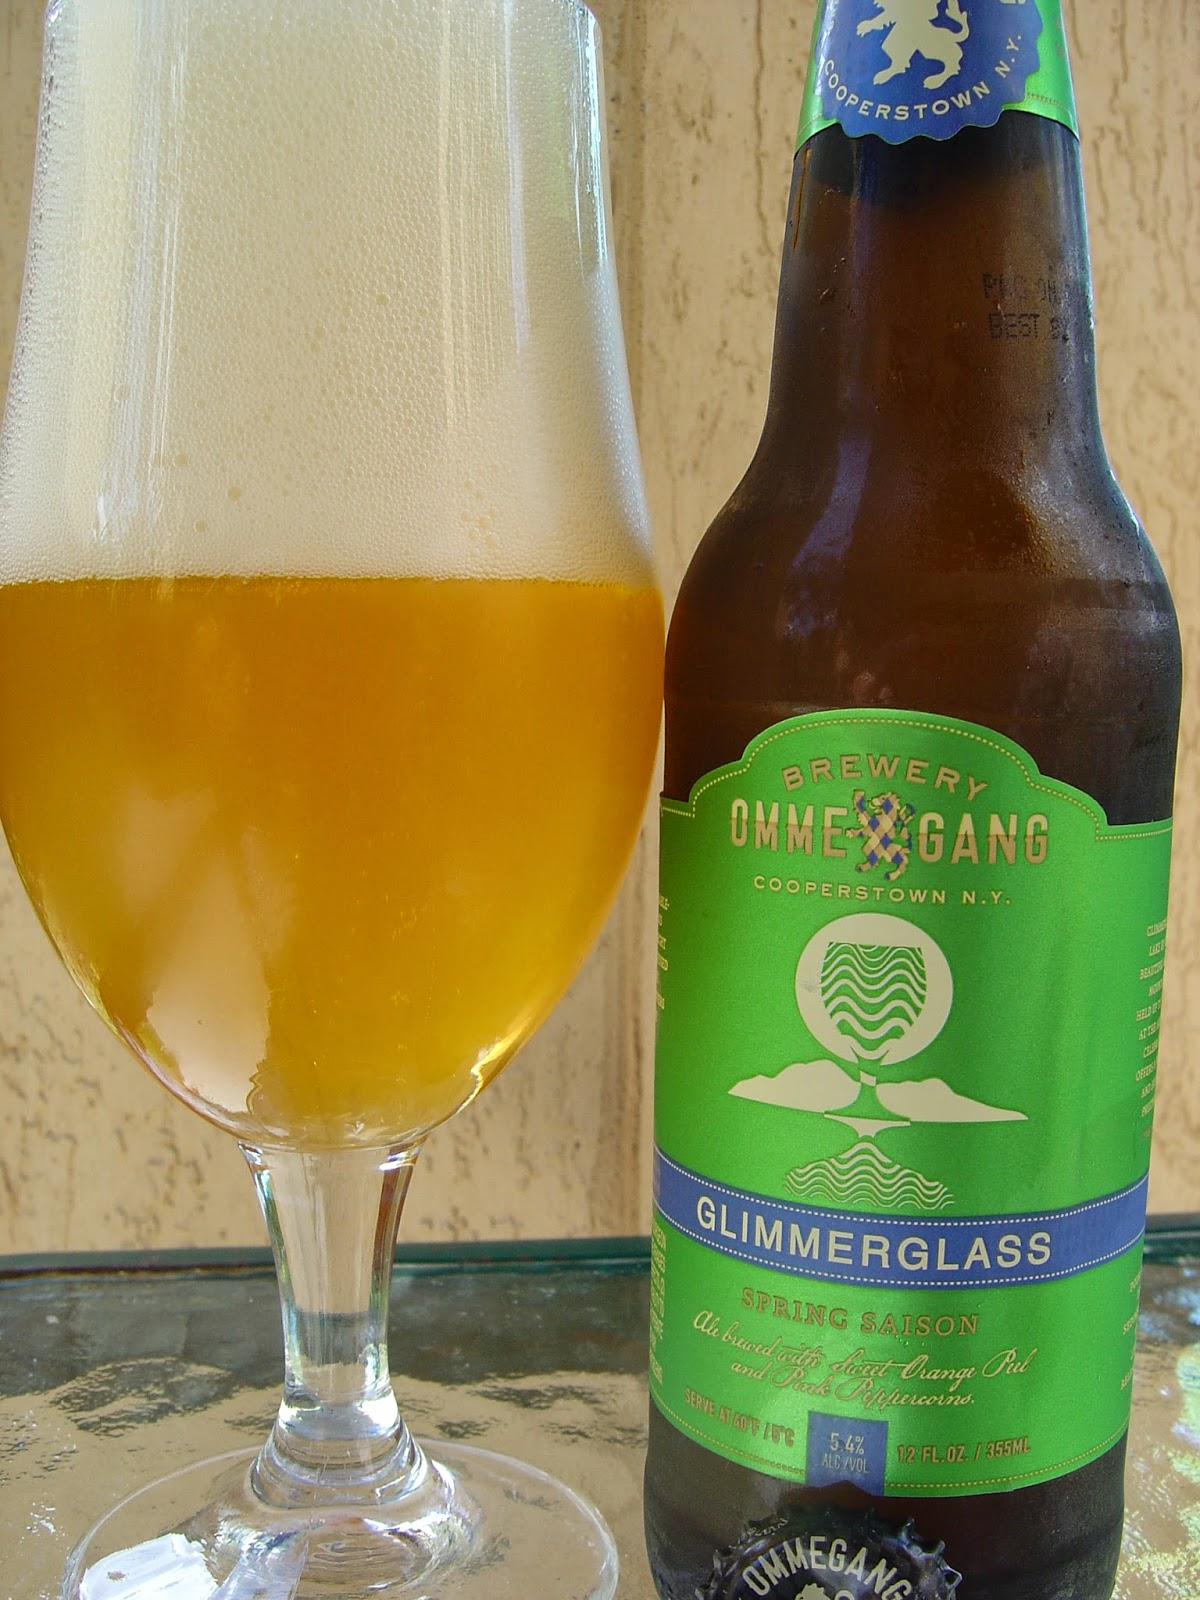 daily beer review glimmerglass spring saison. Black Bedroom Furniture Sets. Home Design Ideas